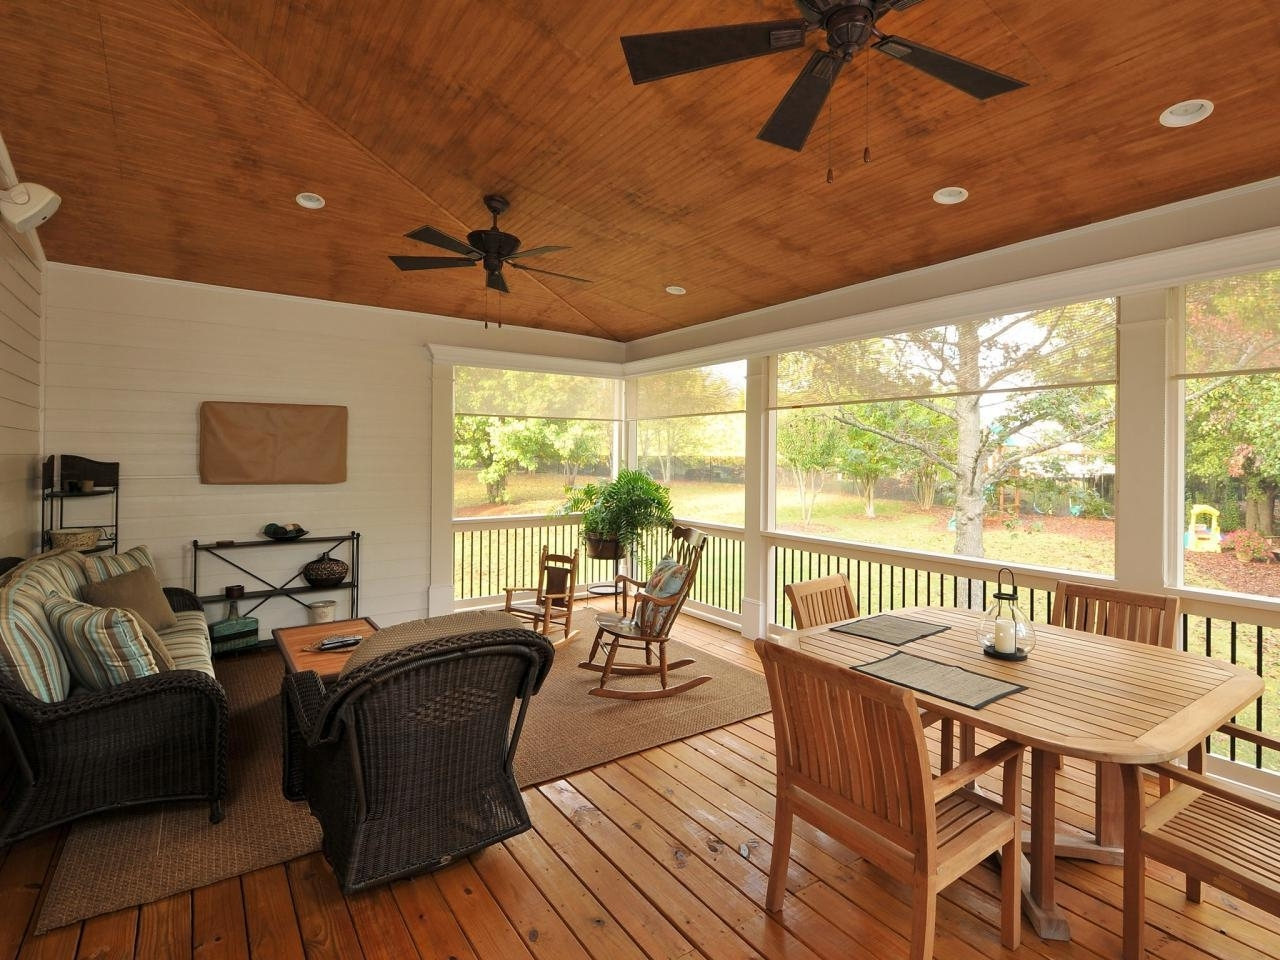 Outdoor Porch Ceiling Fans With Lights Regarding Most Recently Released Lighting Your Lovely Outdoor Porch Ceiling Fans With (View 19 of 20)